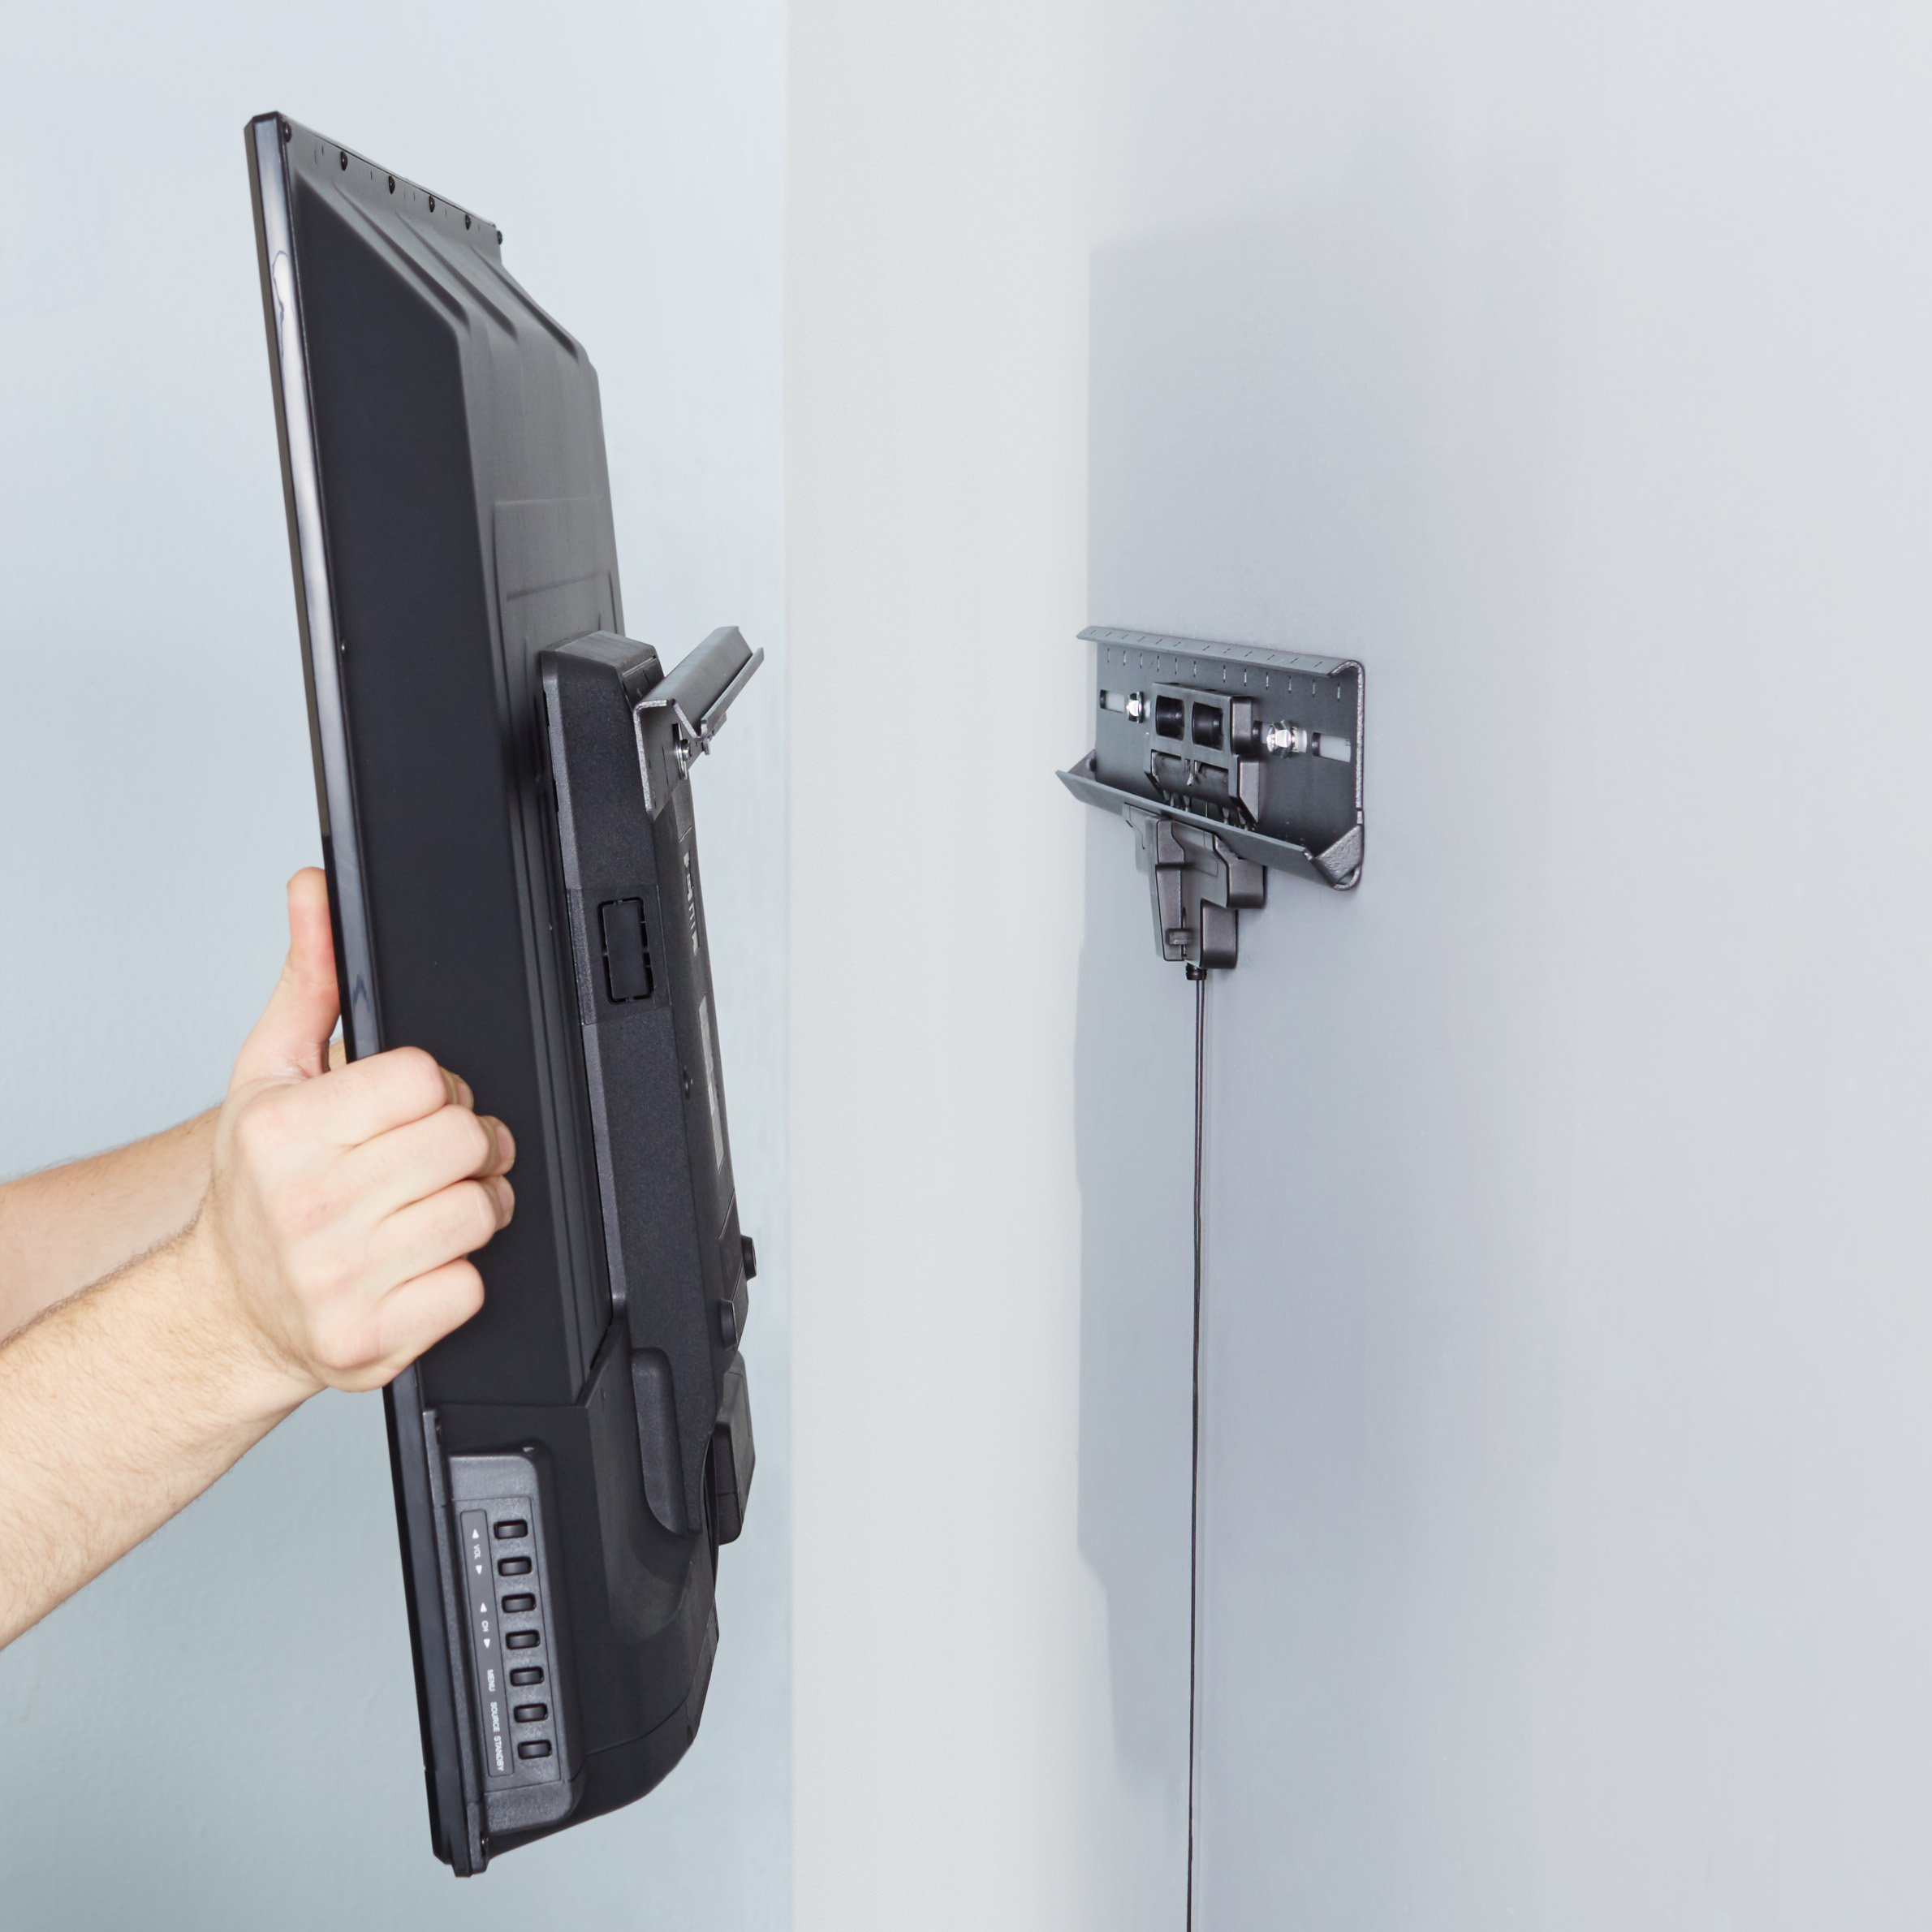 How To Mount A TV Without A Mount: Step By Step Guide